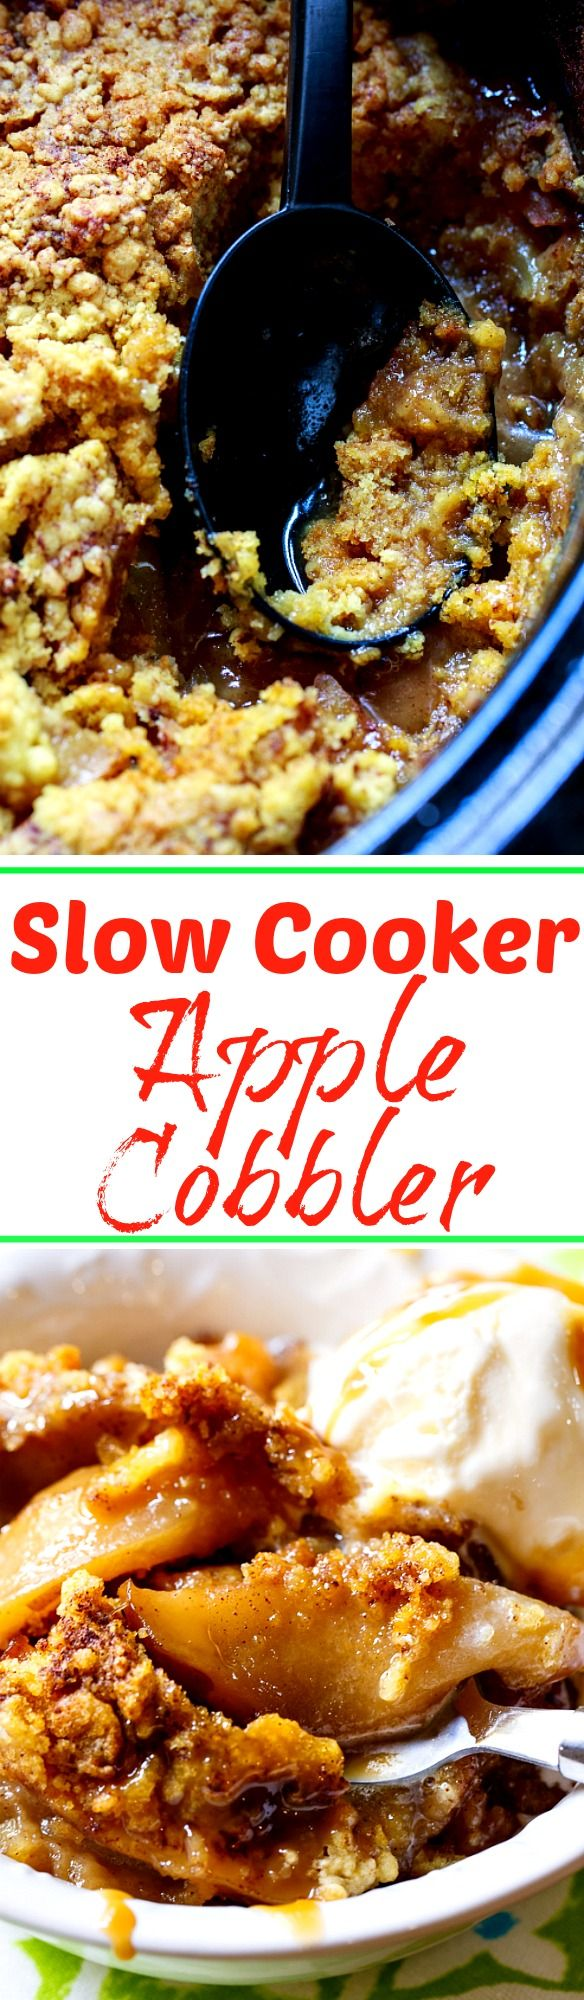 Apple Cobbler made in the crock pot. So easy and only a few ingredients needed!